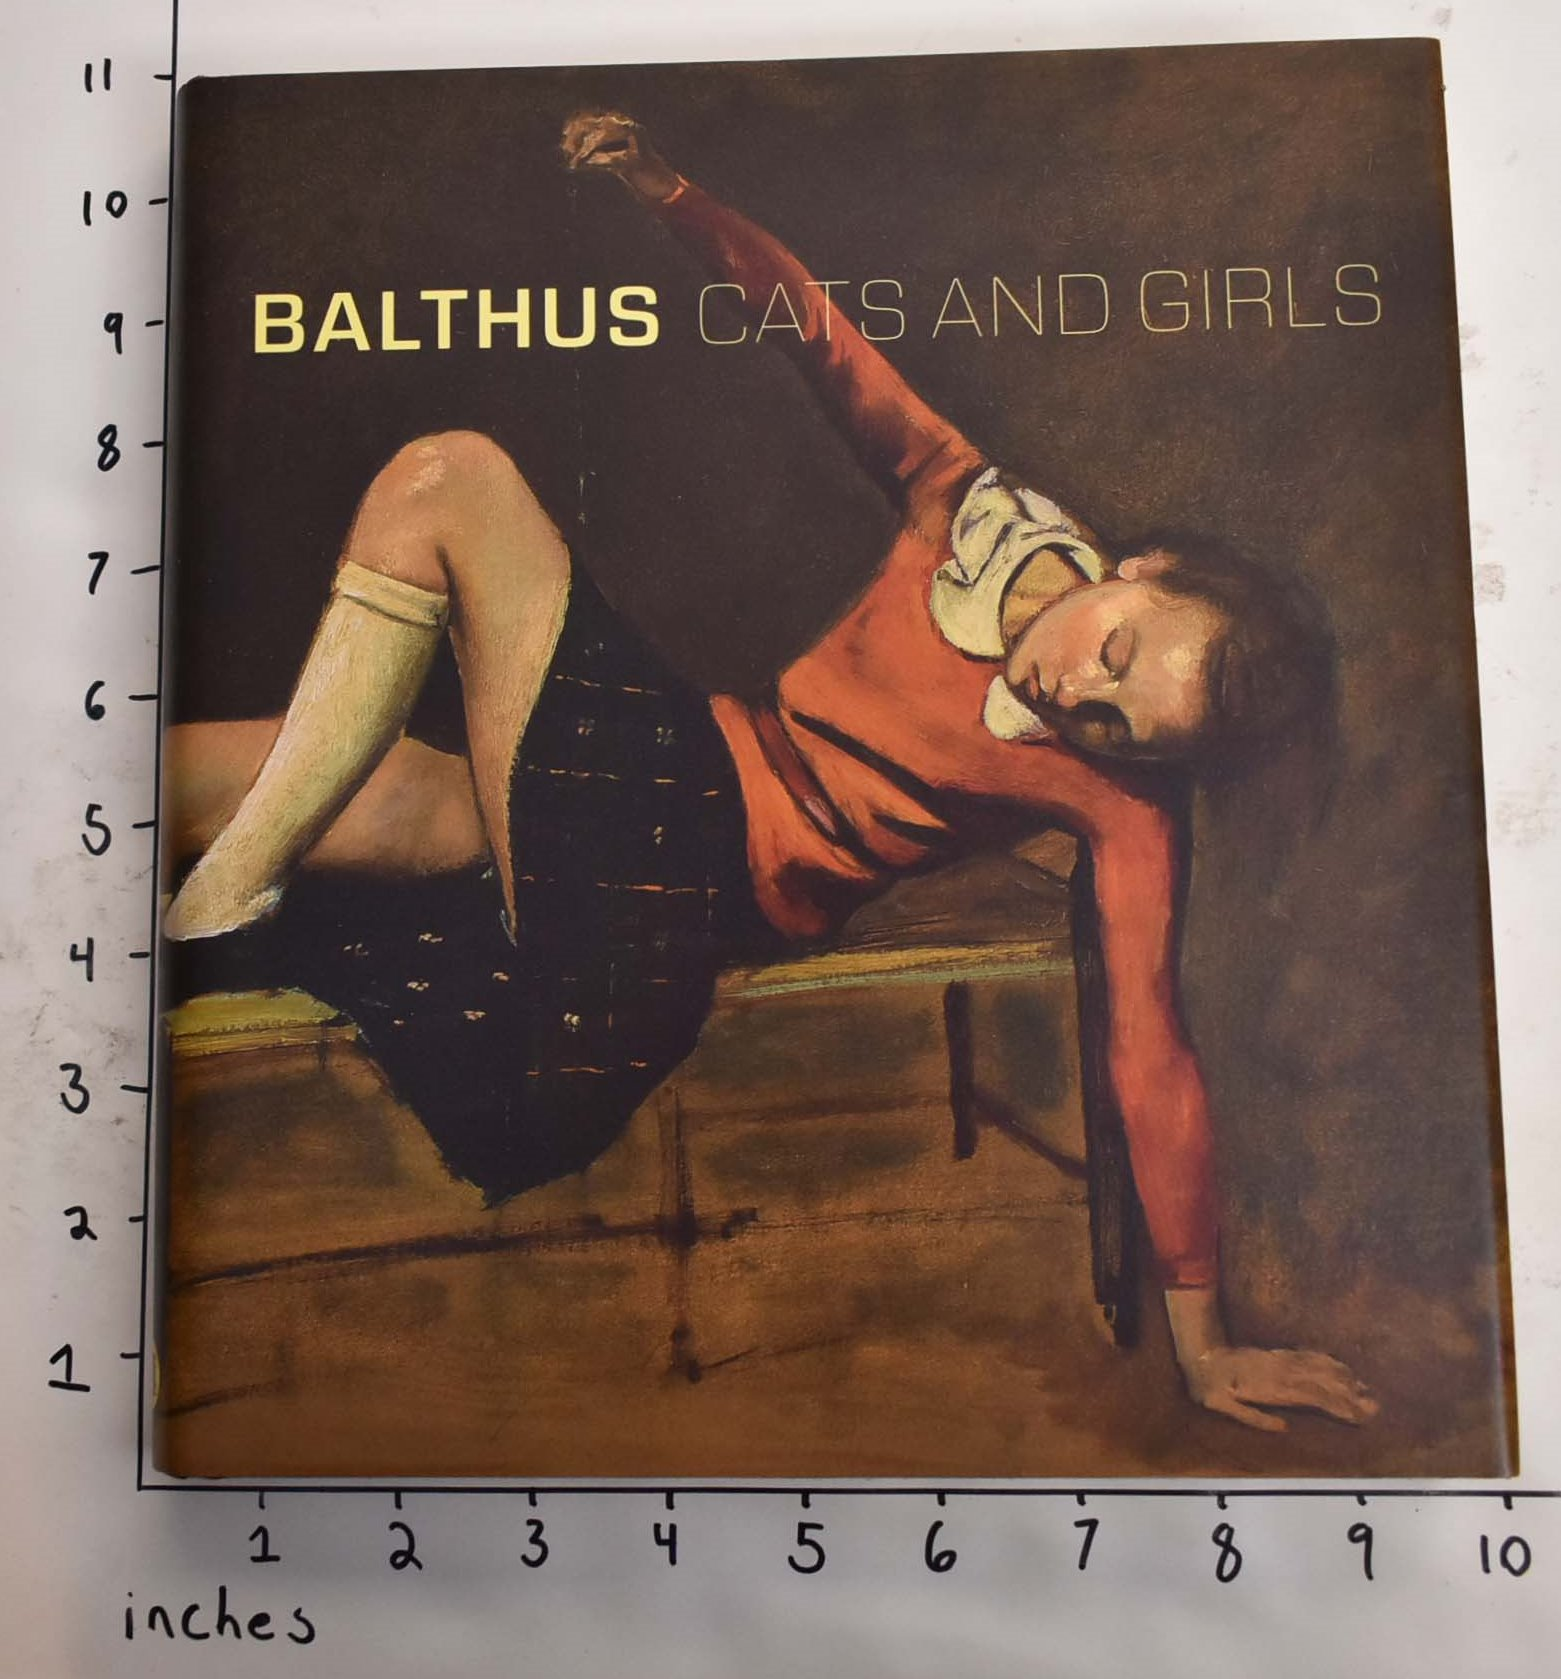 REWALD, SABINE - Balthus: Cats and Girls